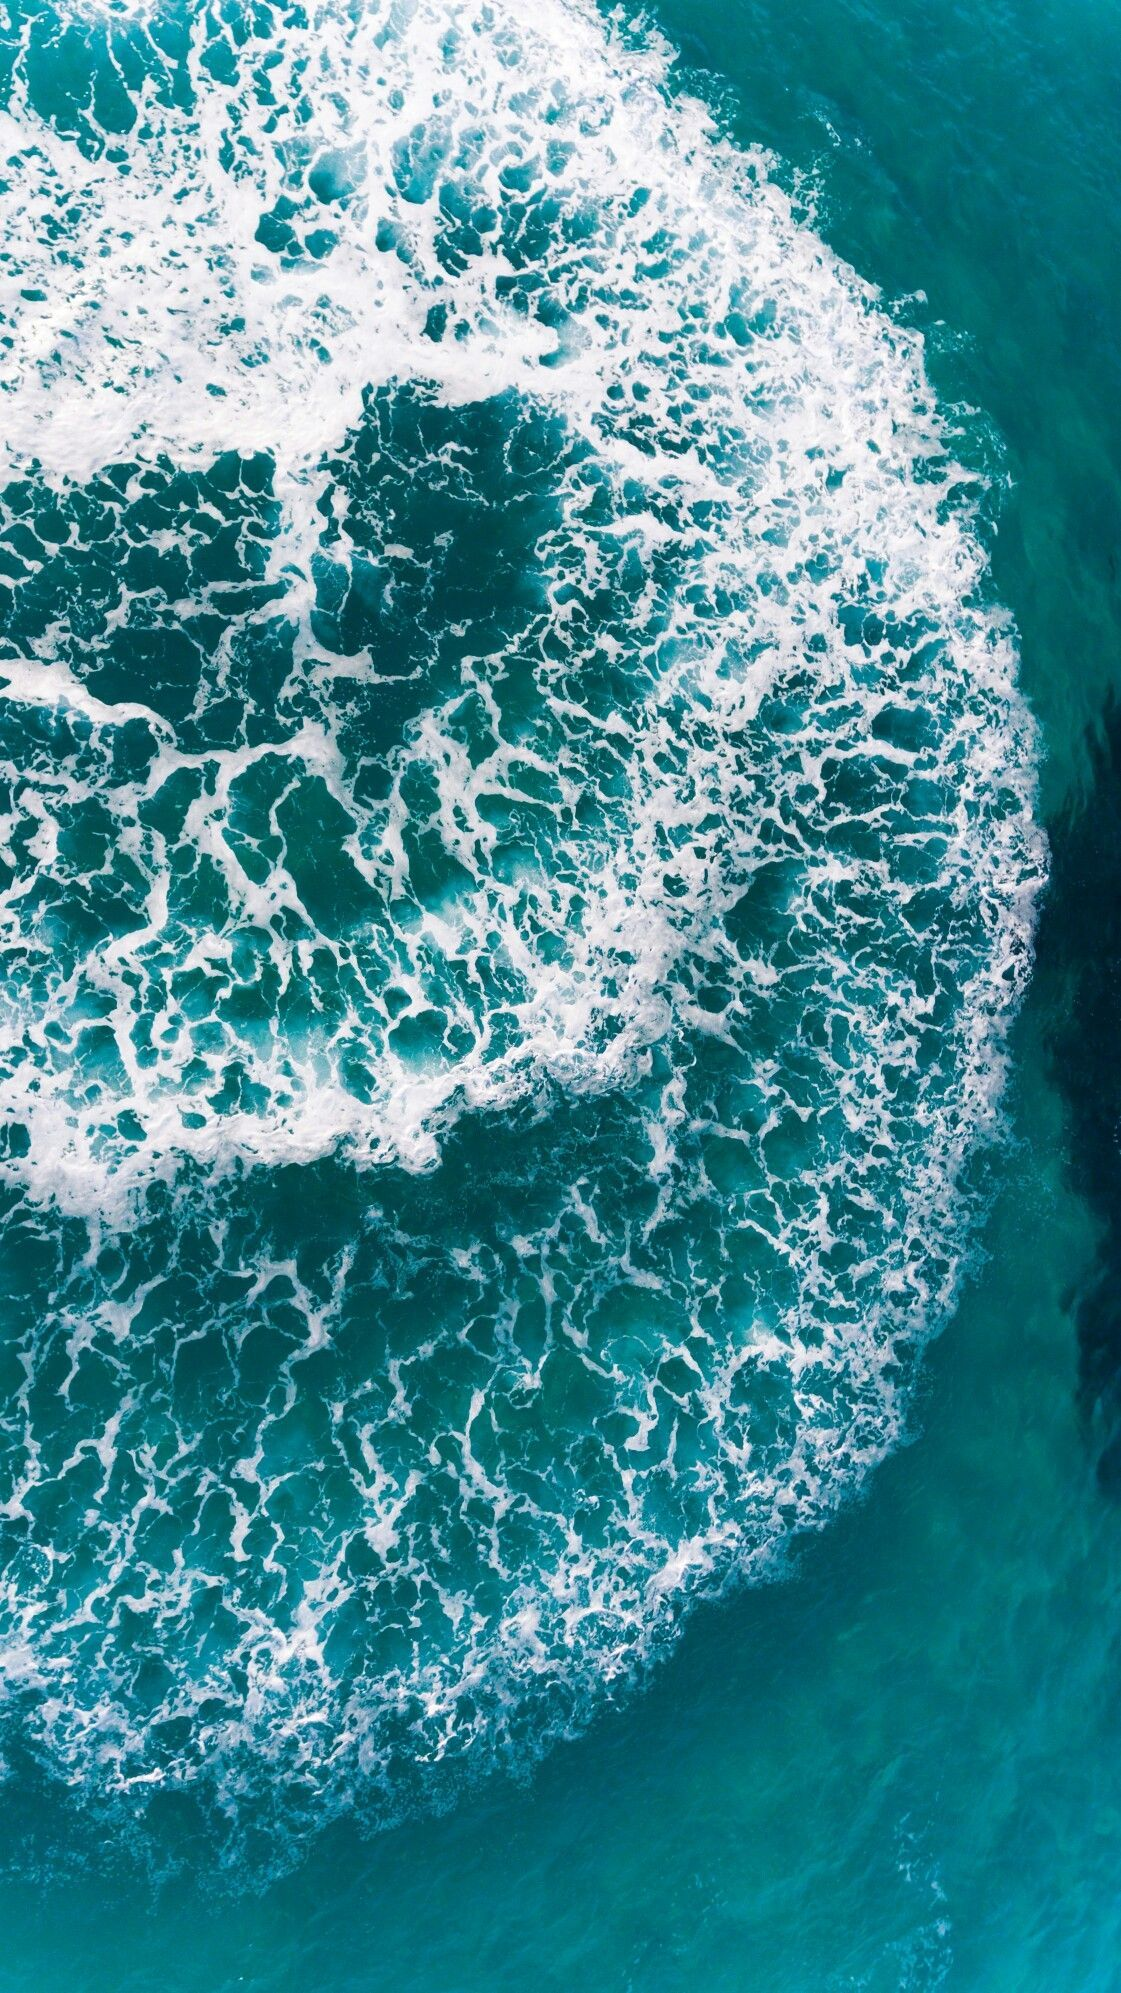 Dronephotography Aerial Photography Drone Dreamy Photography Drone Photography